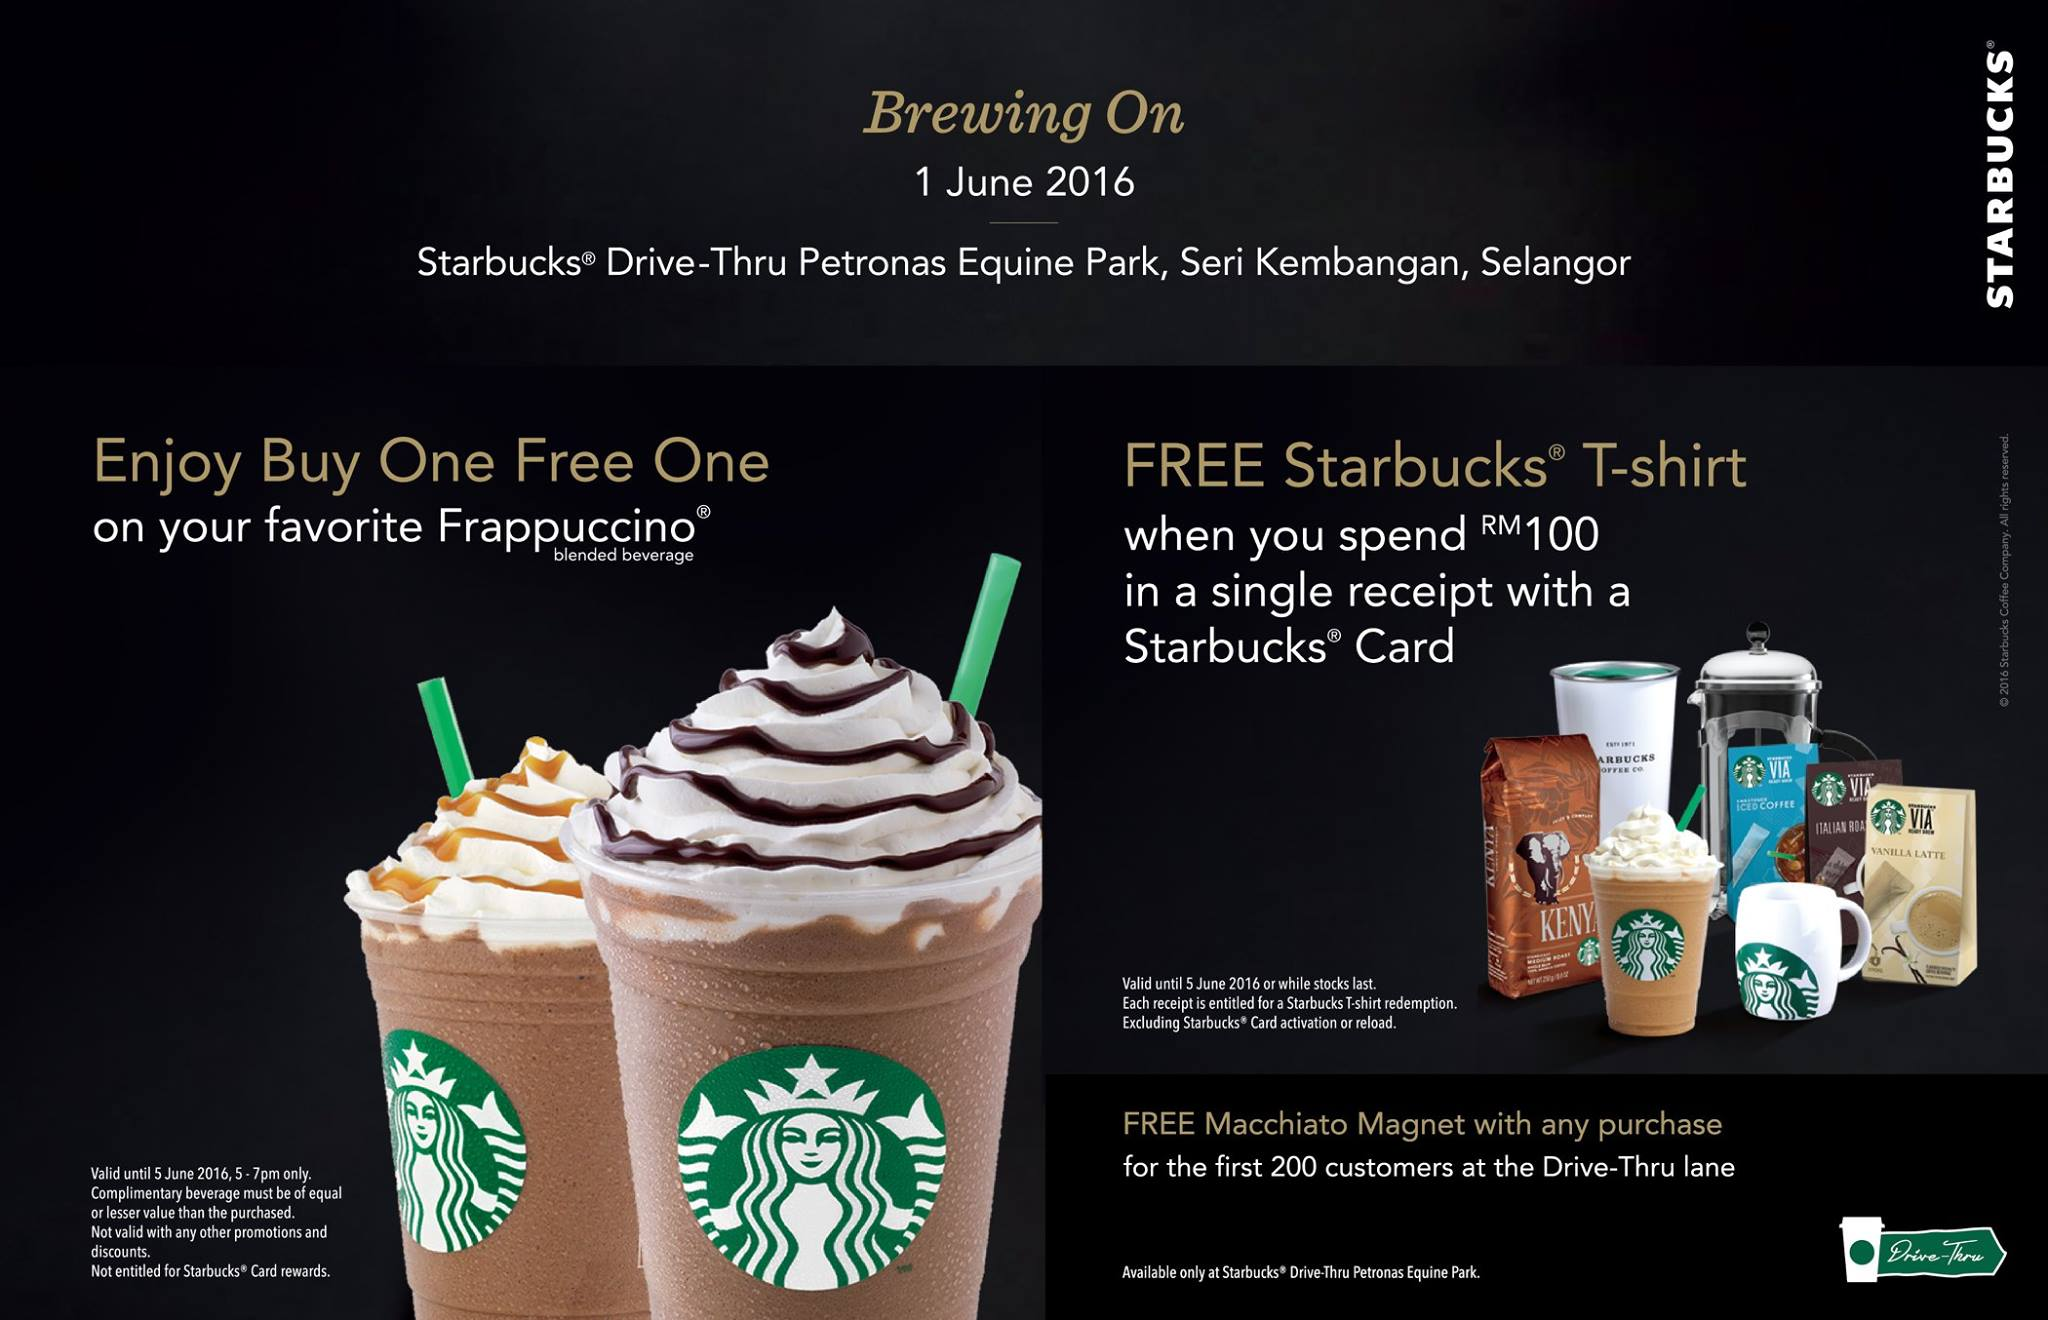 Starbucks Buy 1 Free 1 On Your Favorite Frappuccino Blended